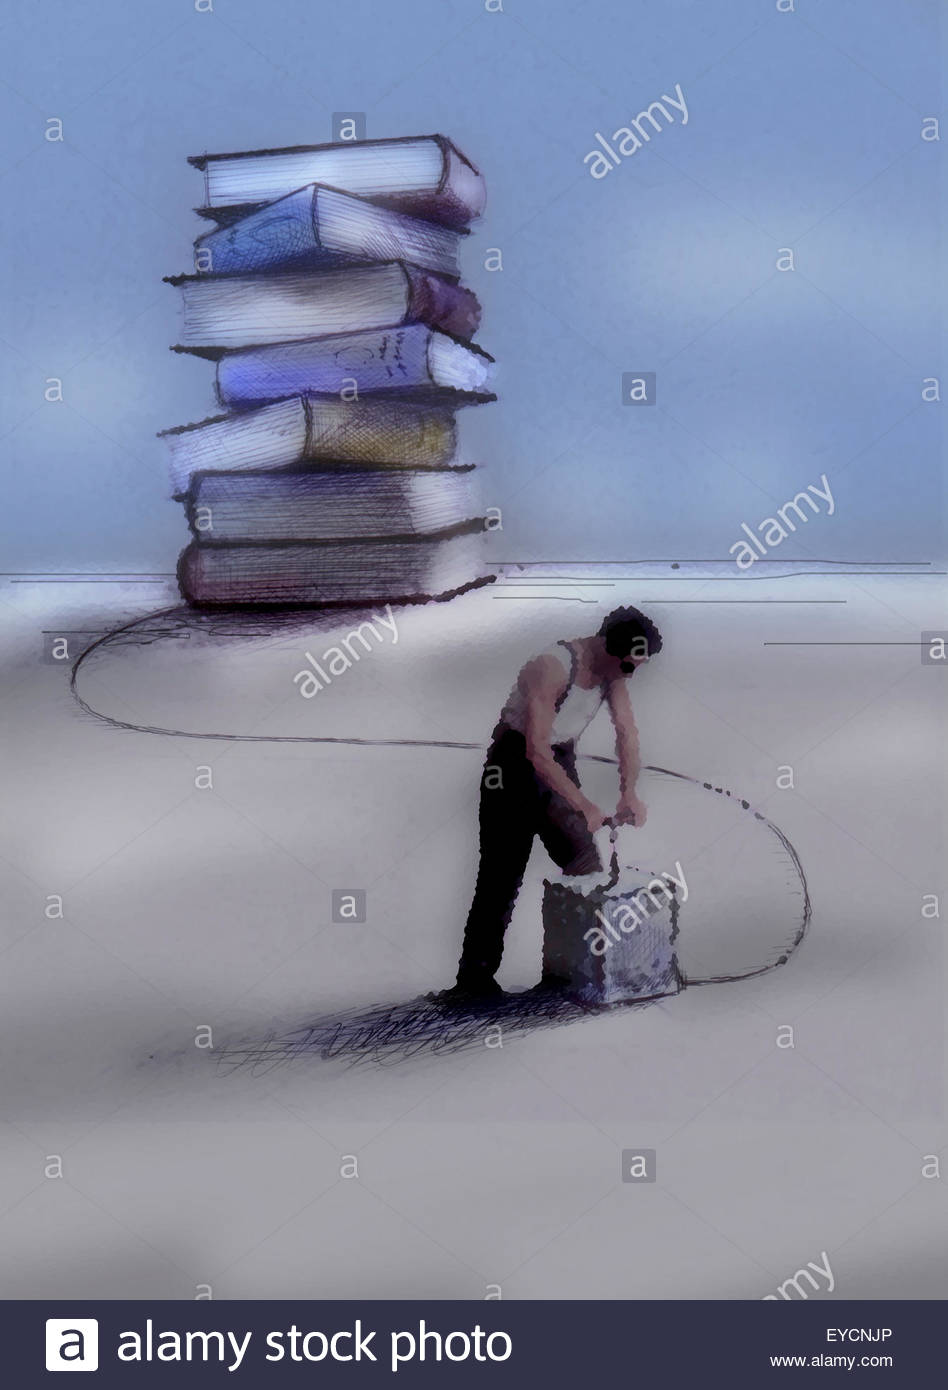 Man pushing detonator attached to stack of books - Stock Image